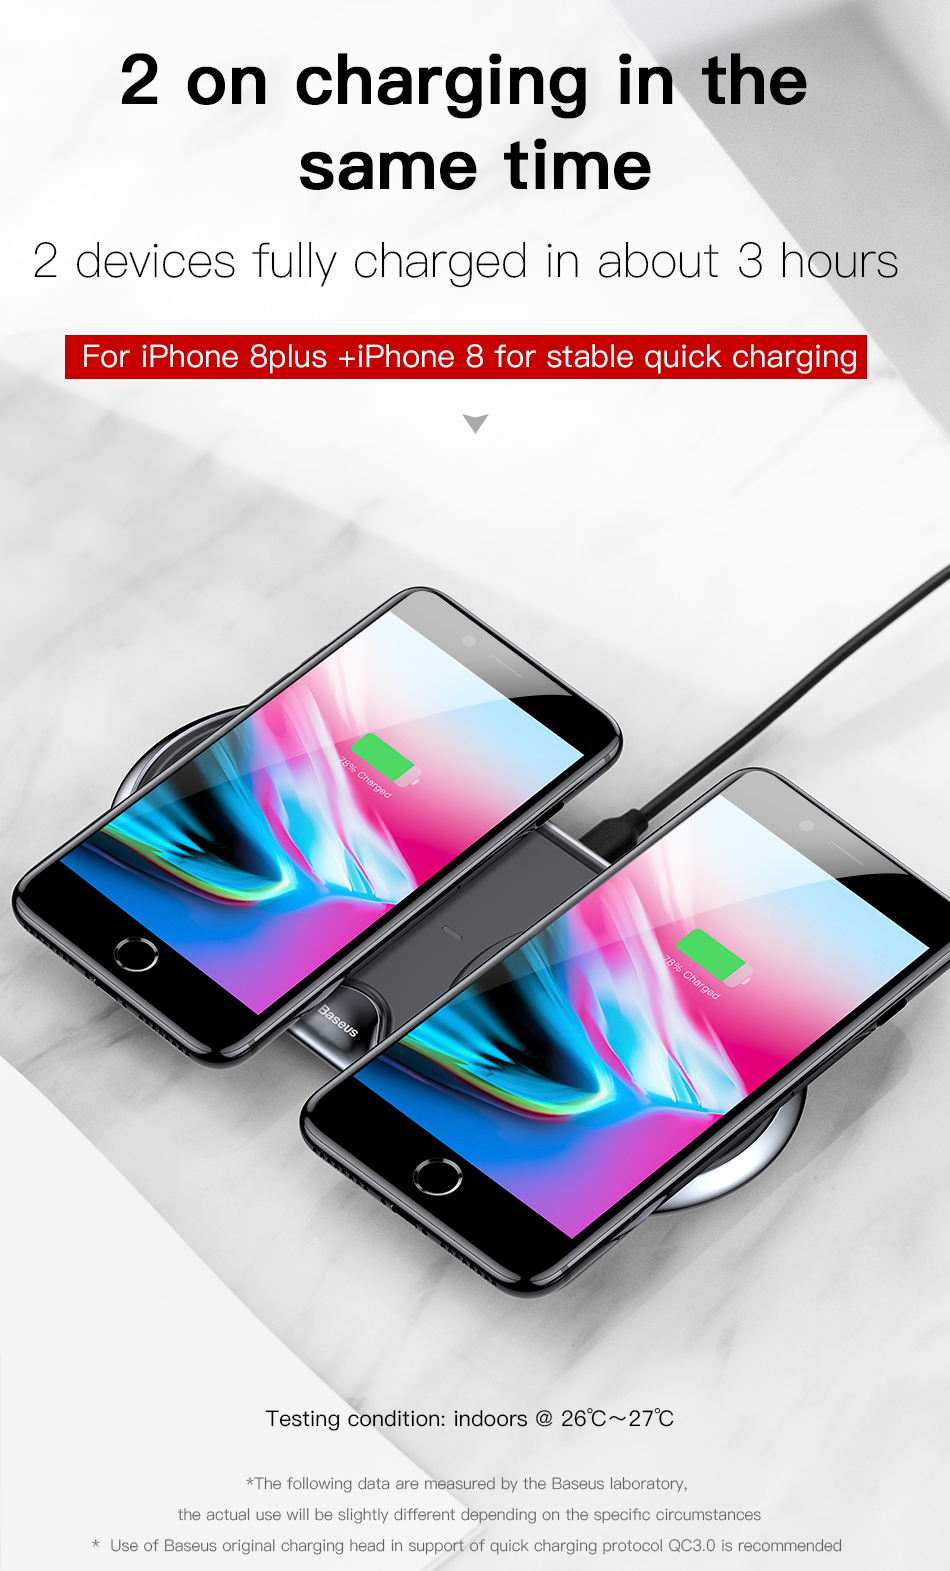 Wireless Charger of Baseus Dual For iPhone X XS Max Xr Samsung S9 S8 Note 8 9 10W Fast Wireless Charging Pad Dock Station Desktop 7